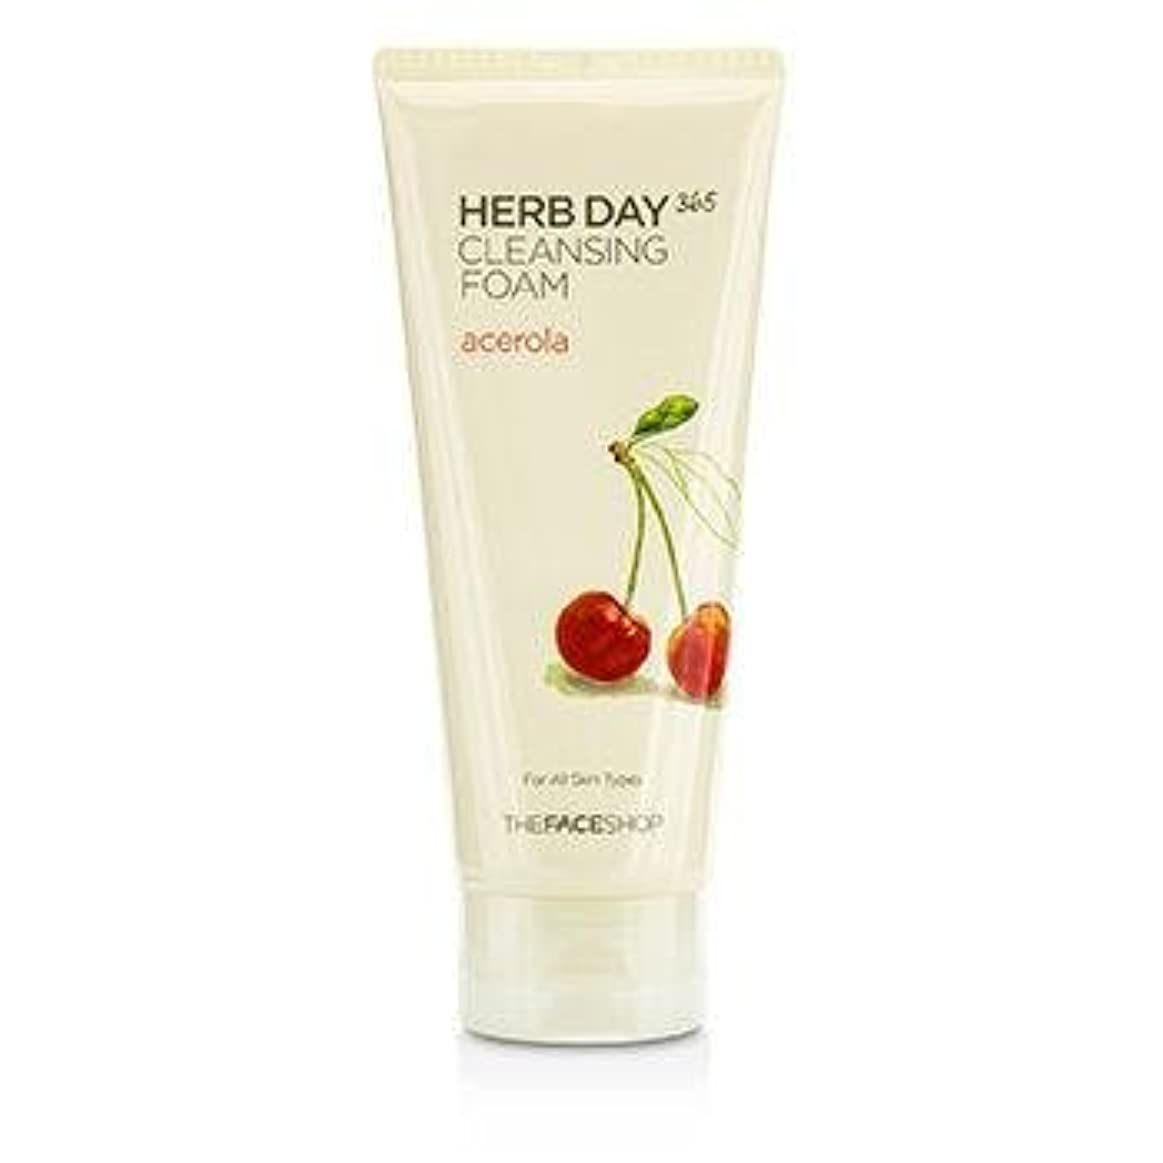 圧倒的フリッパー省THE FACE SHOP Herb Day 365 Cleansing Foam Acerola (並行輸入品)